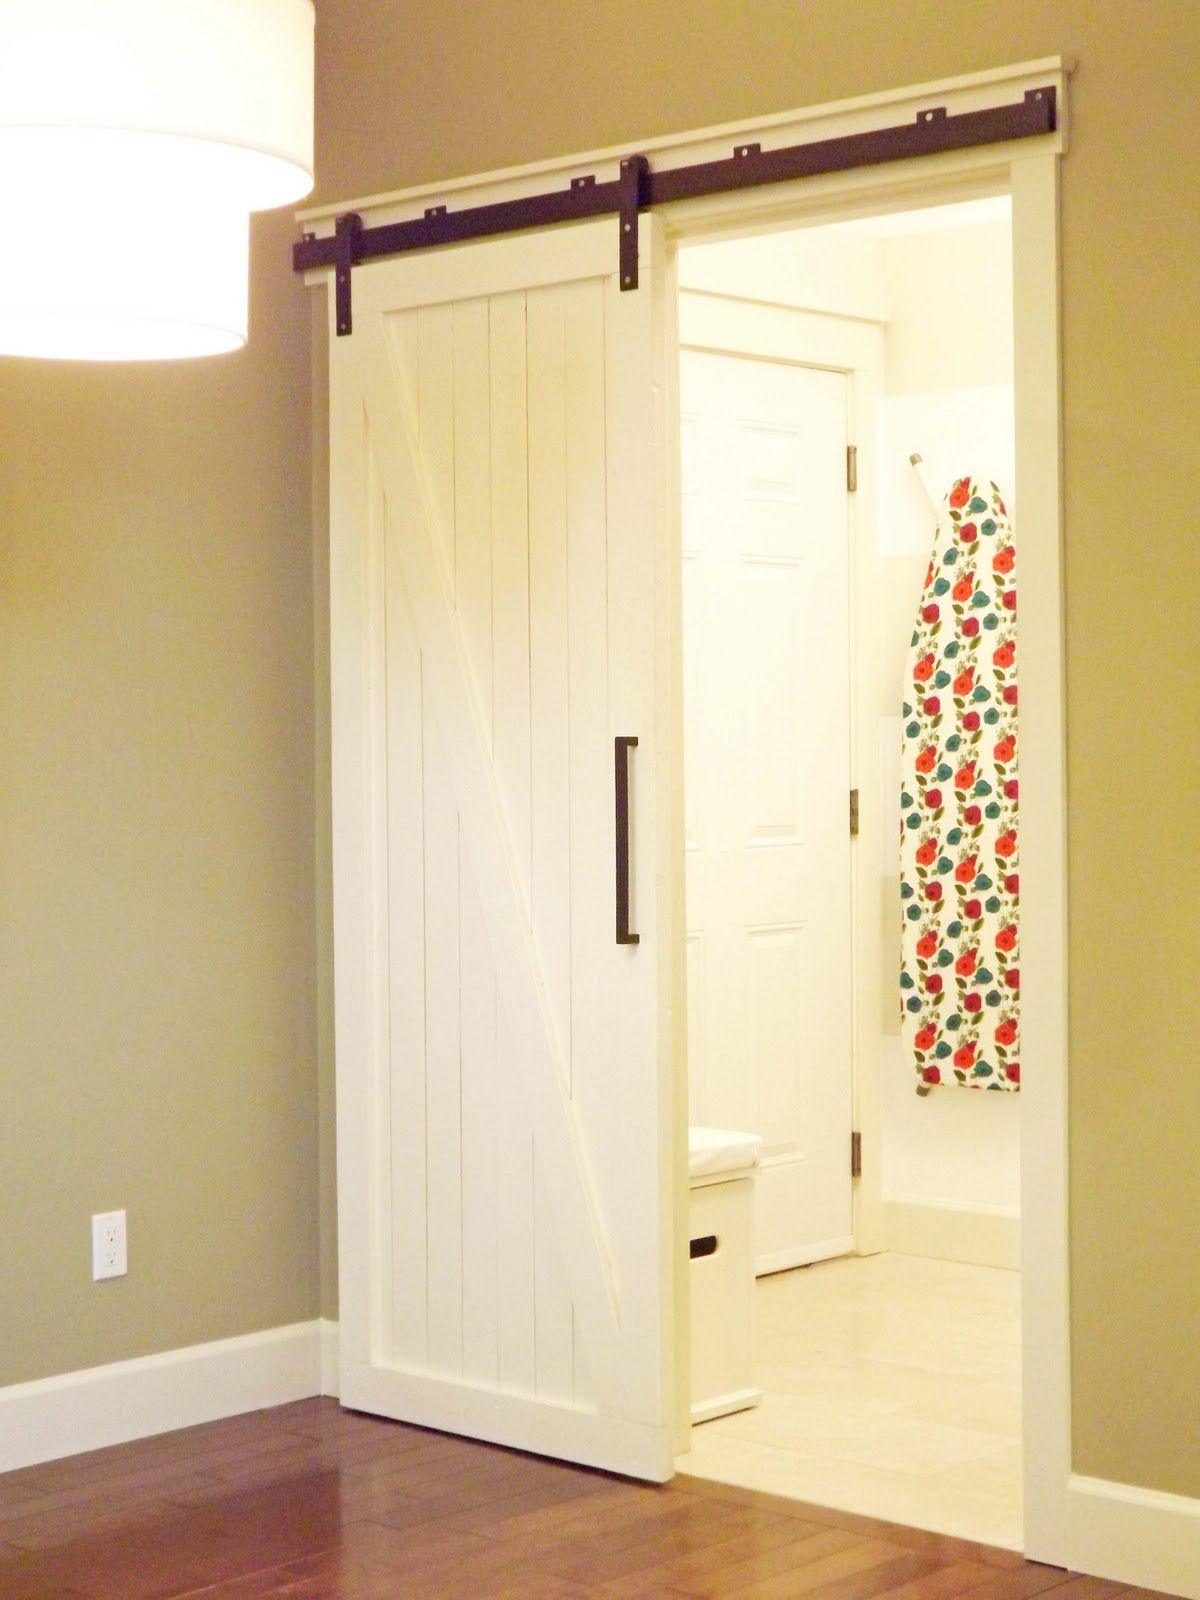 September 27th 2011 Was Our First Post About Wanting A Barn Door